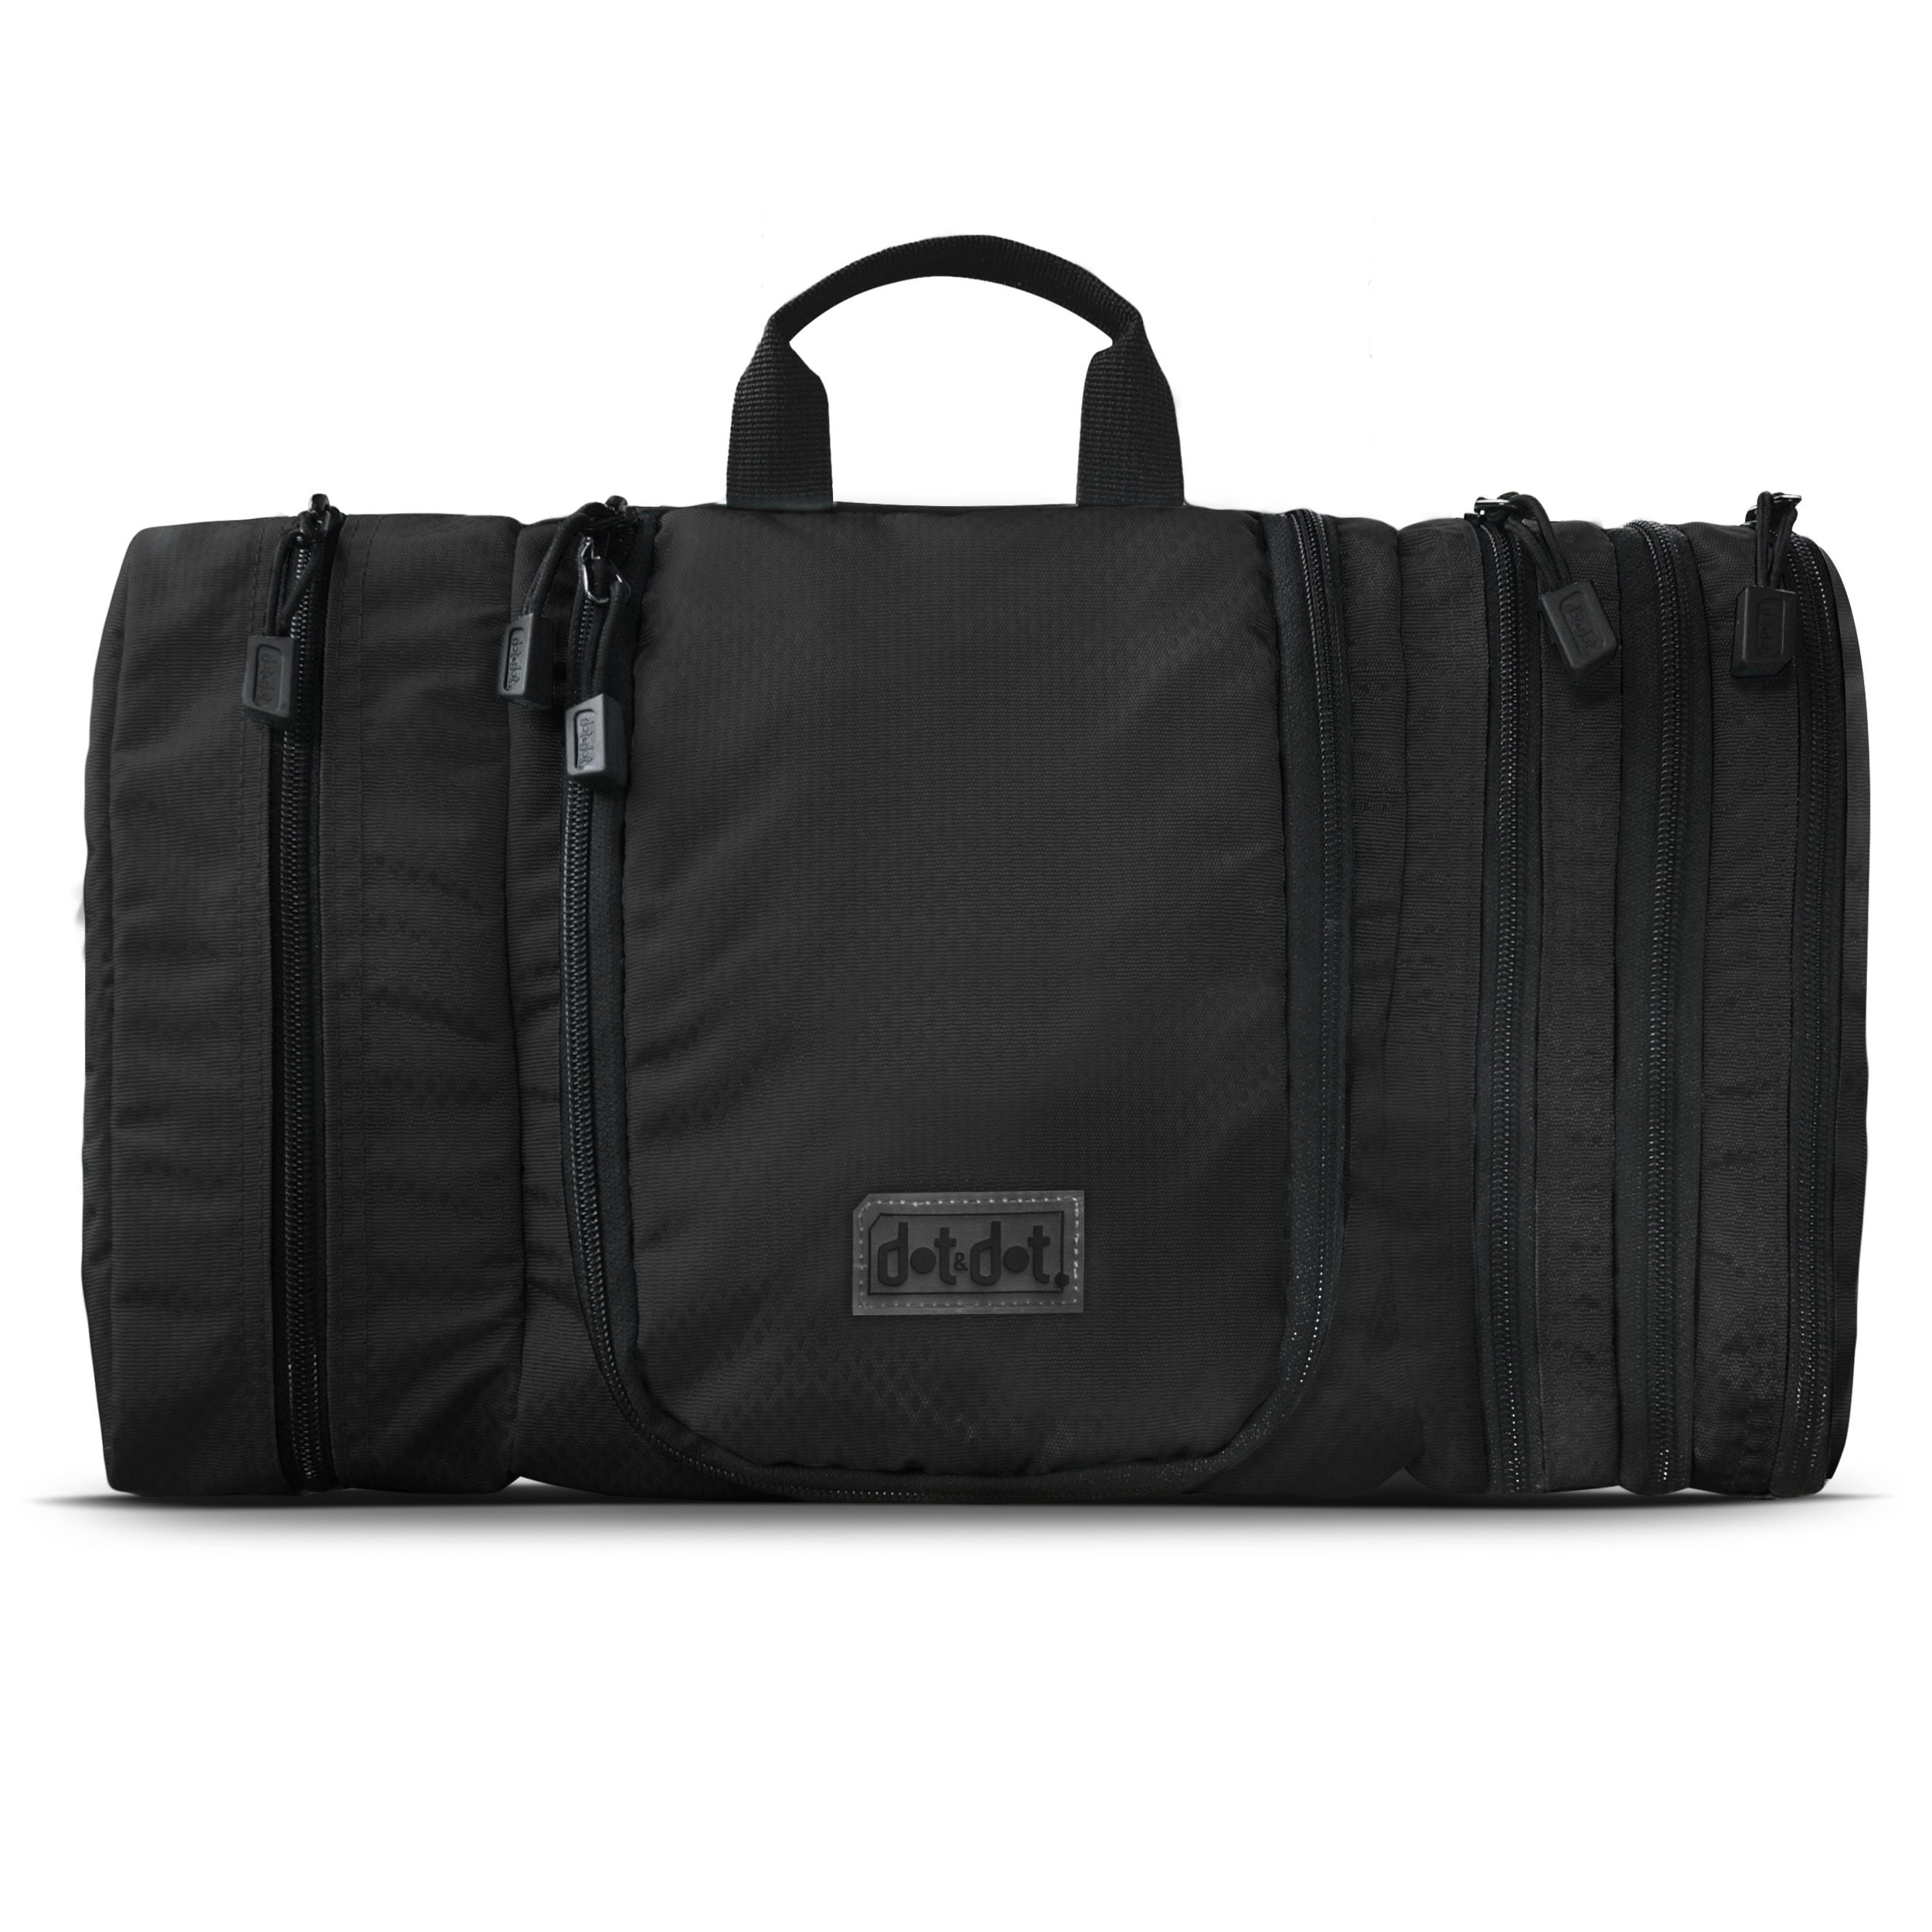 618135cbf63f This hanging toiletry bag is made of pure non-toxic 420D nylon that ...